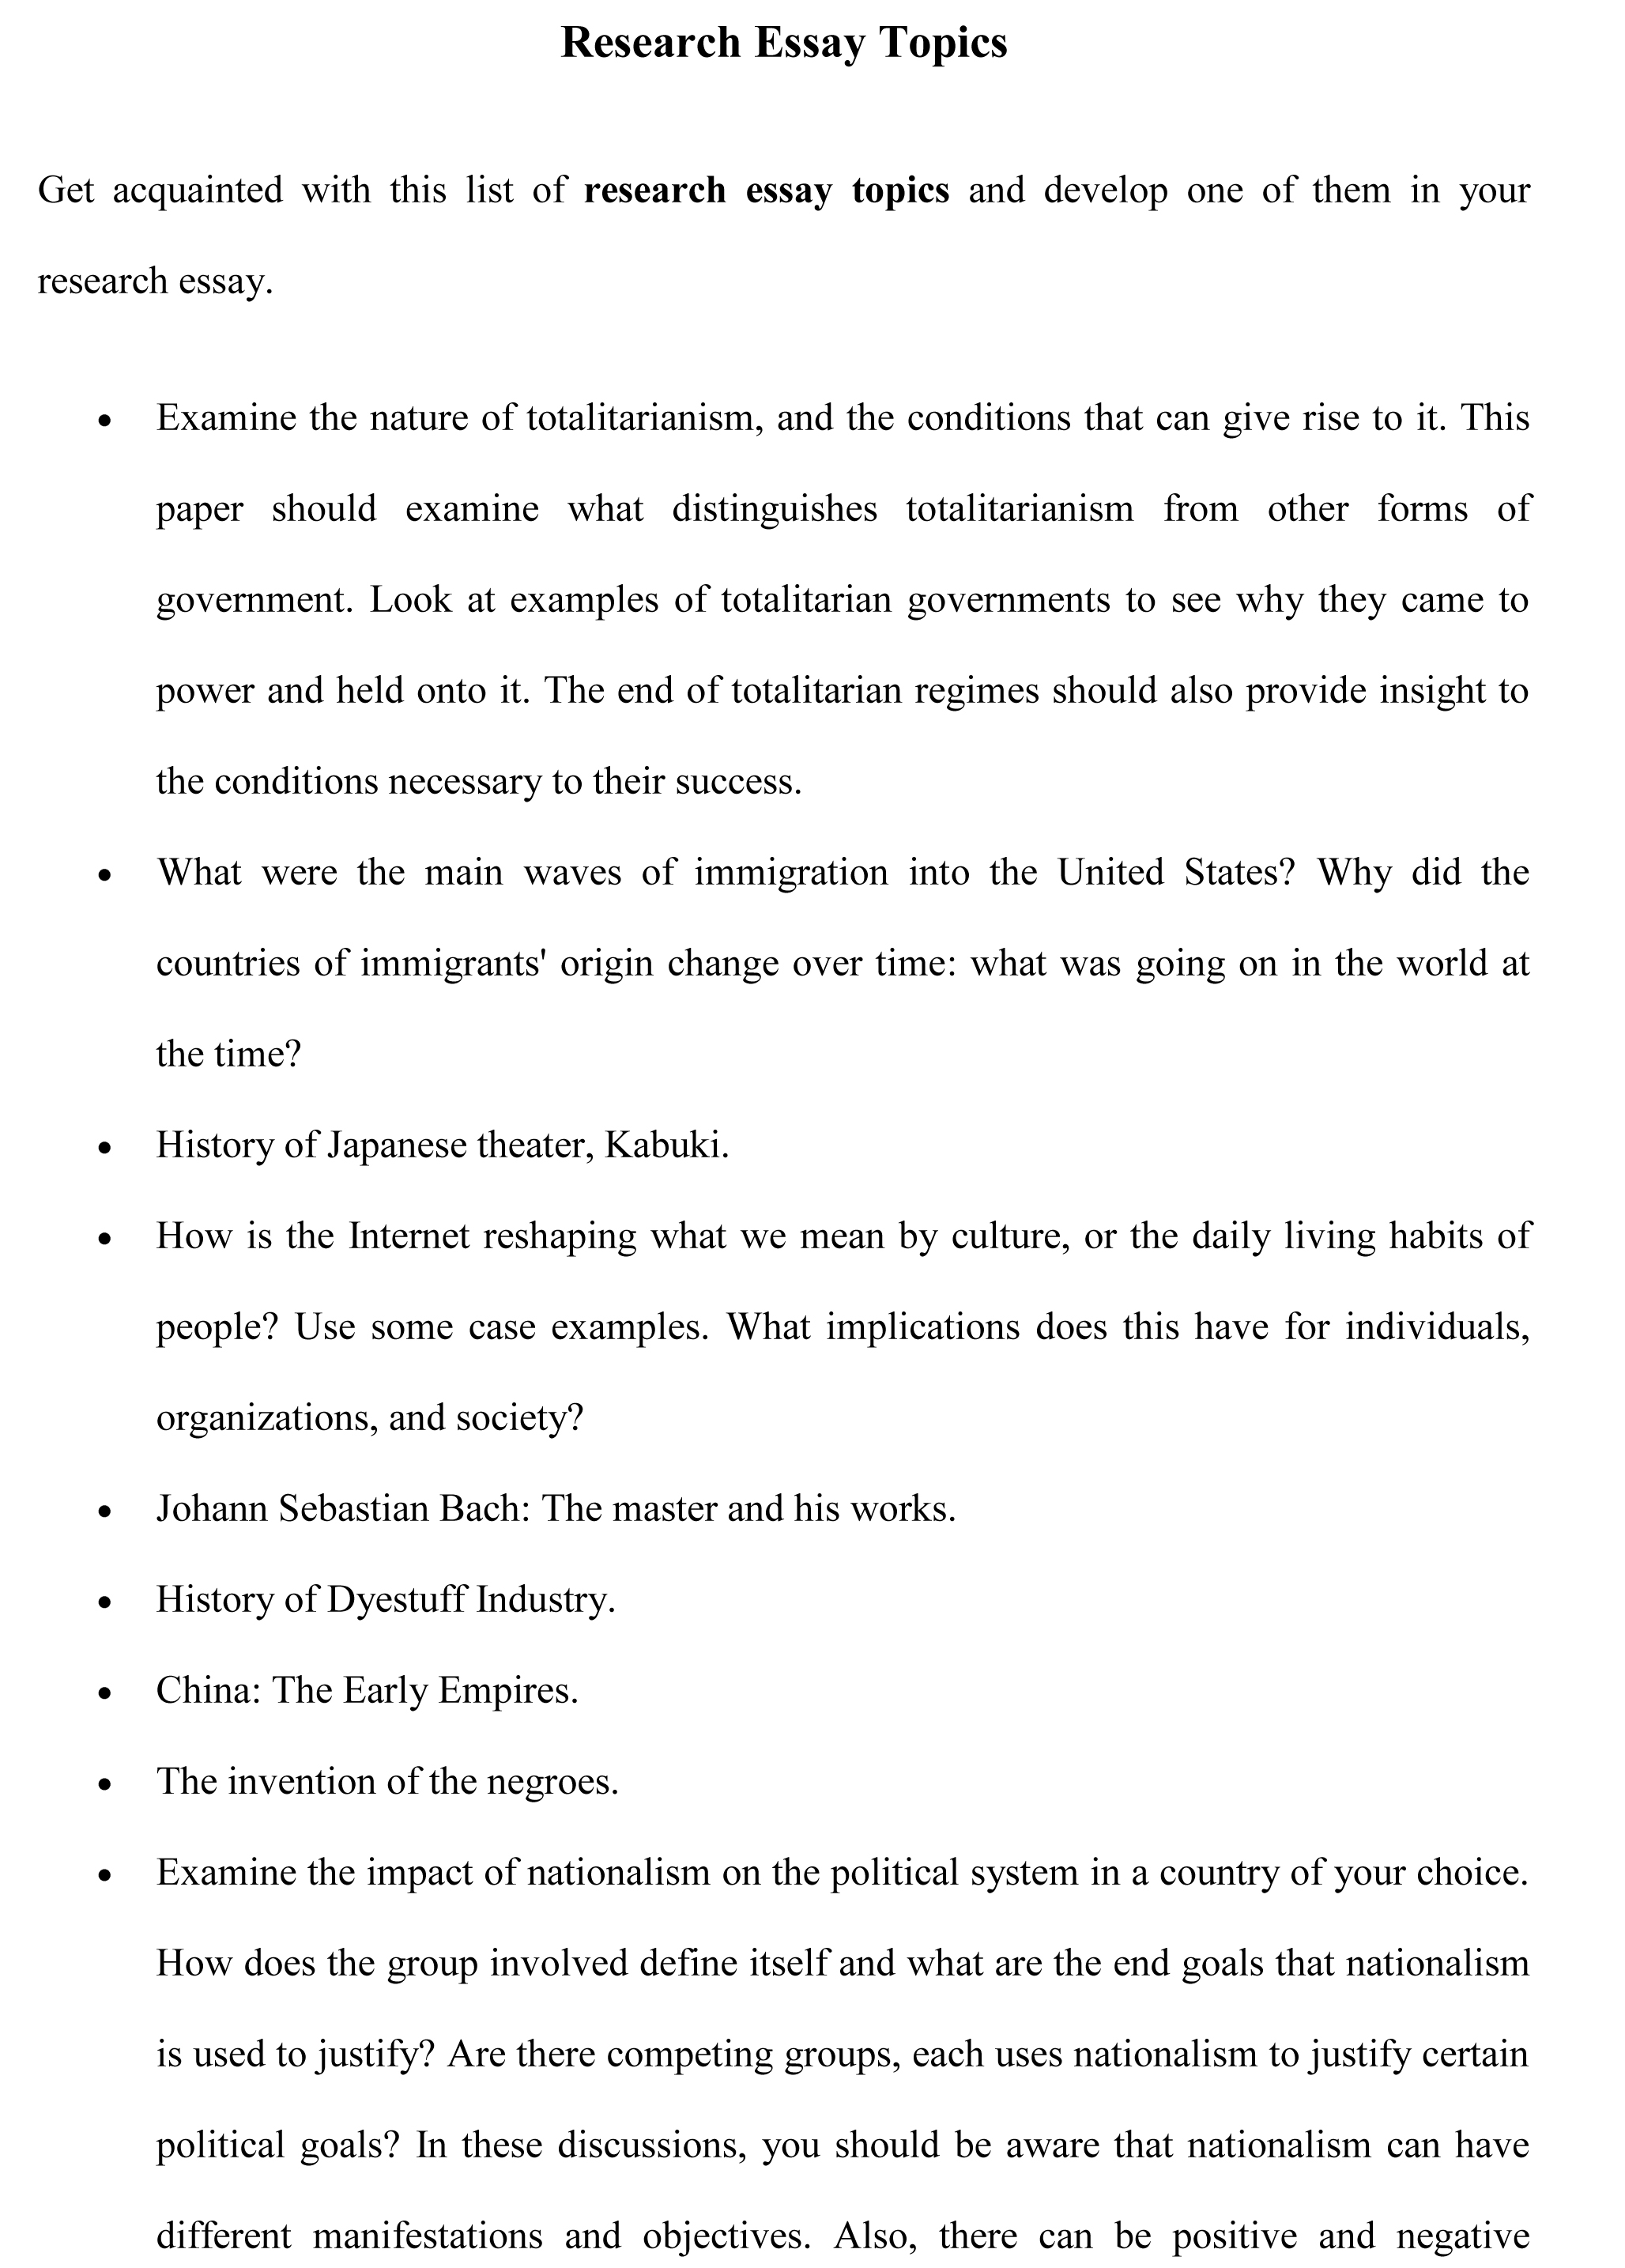 011 Research Paper Essay Topics Sample Chinese Awful Economy Full